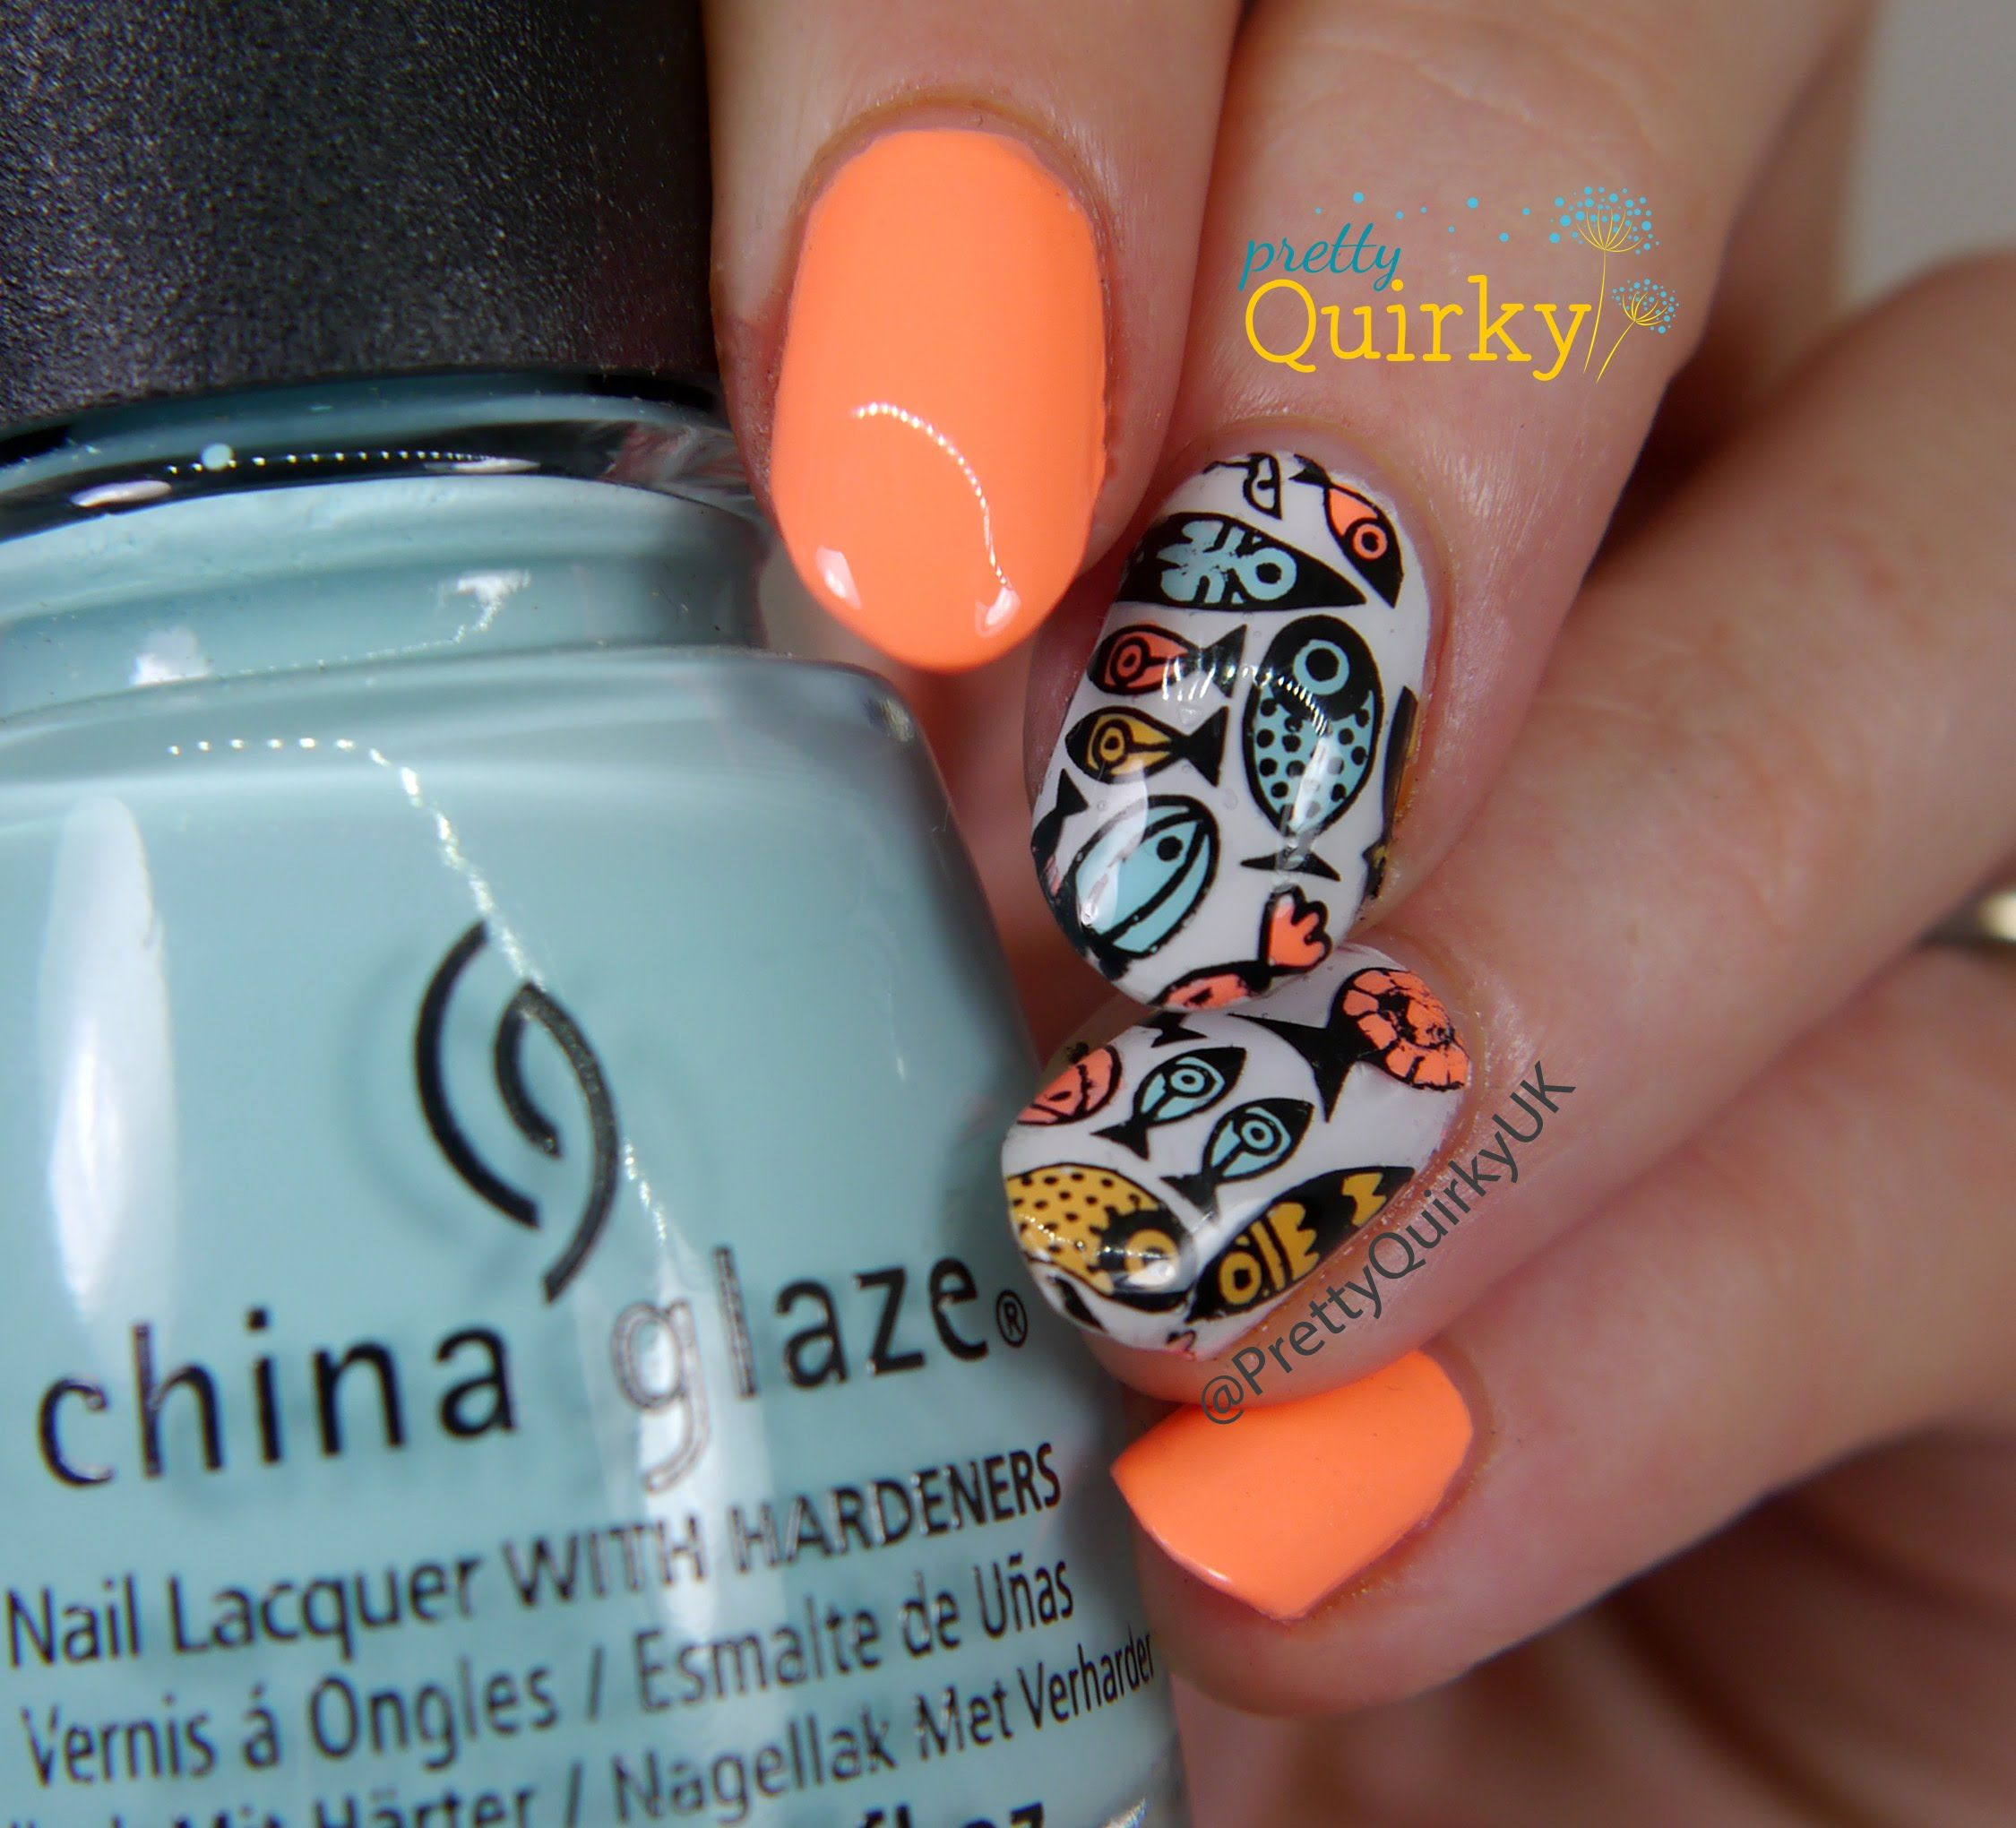 Nail Art Tutorial Nautical Nail Art Using Cuccio: A Quick Video Tutorial Showing How To Make Your Own